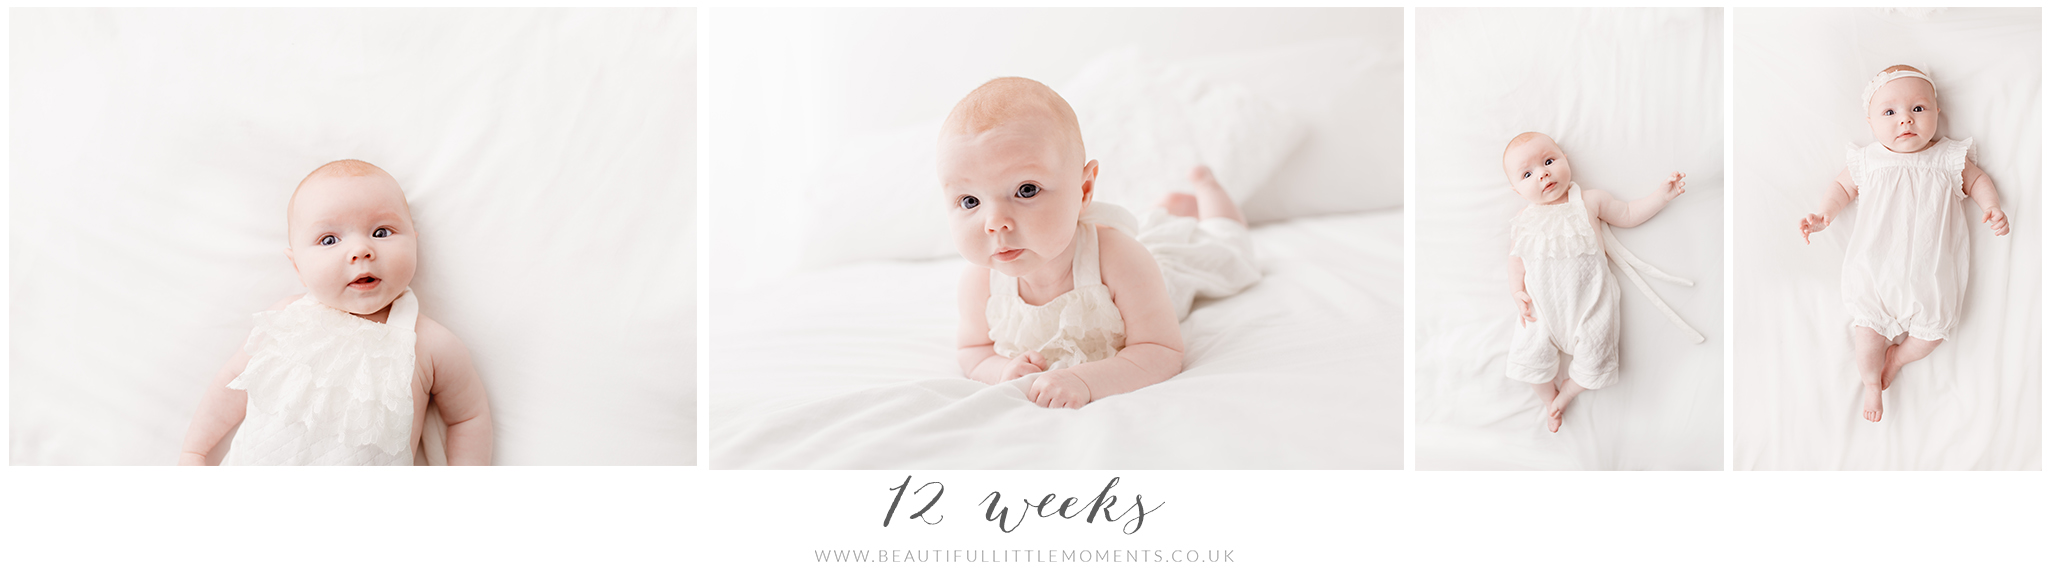 baby photos 12 weeks